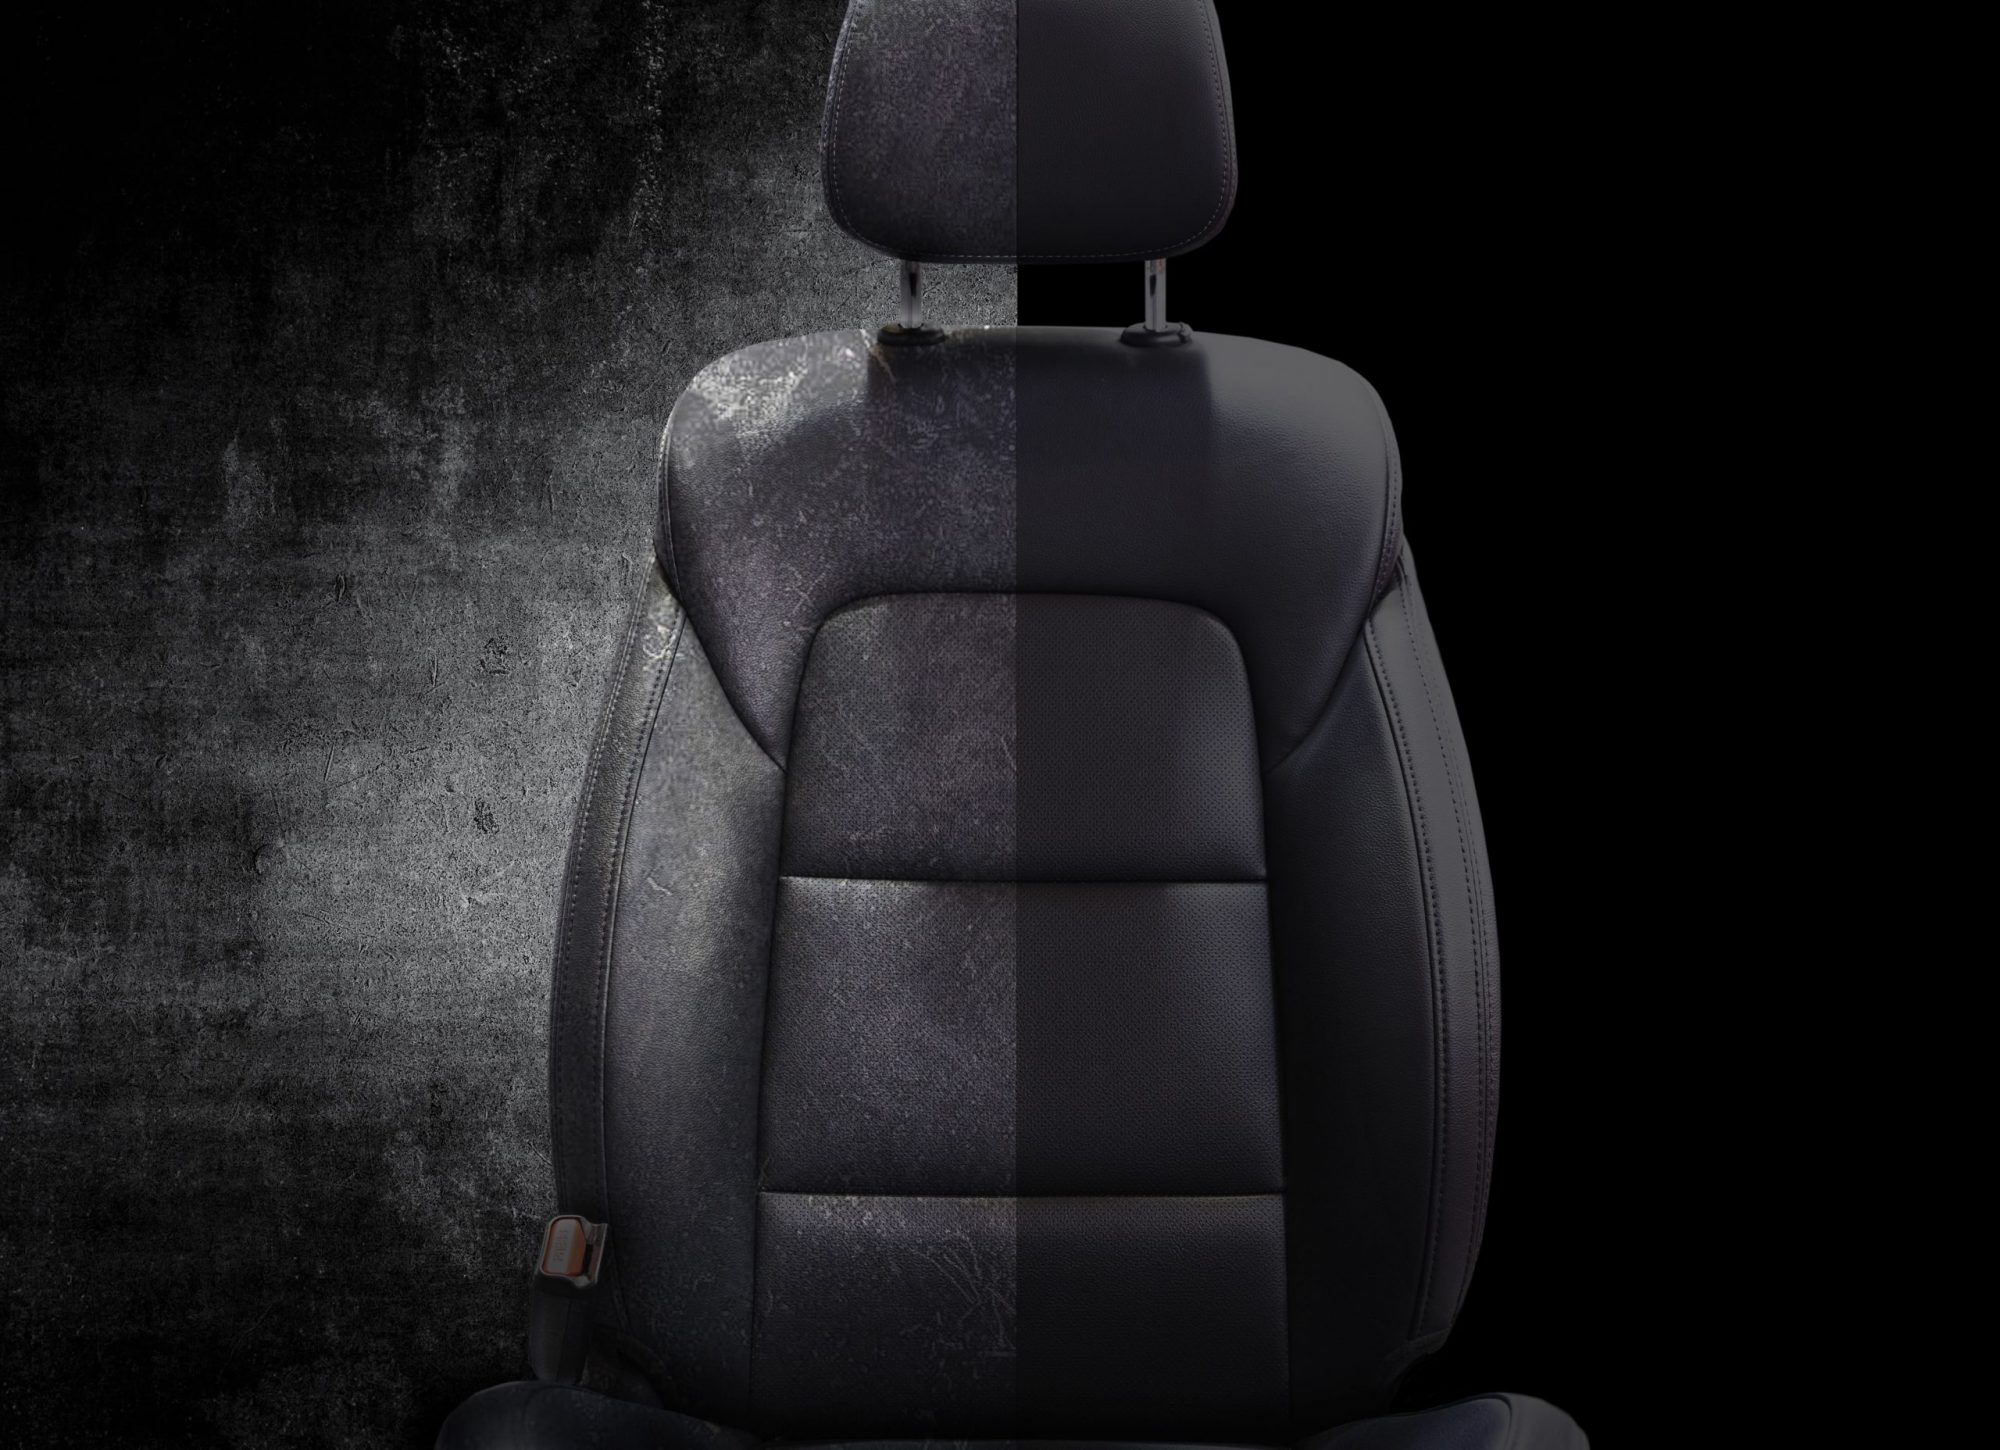 The car fabric chair is a MotorCo accessory